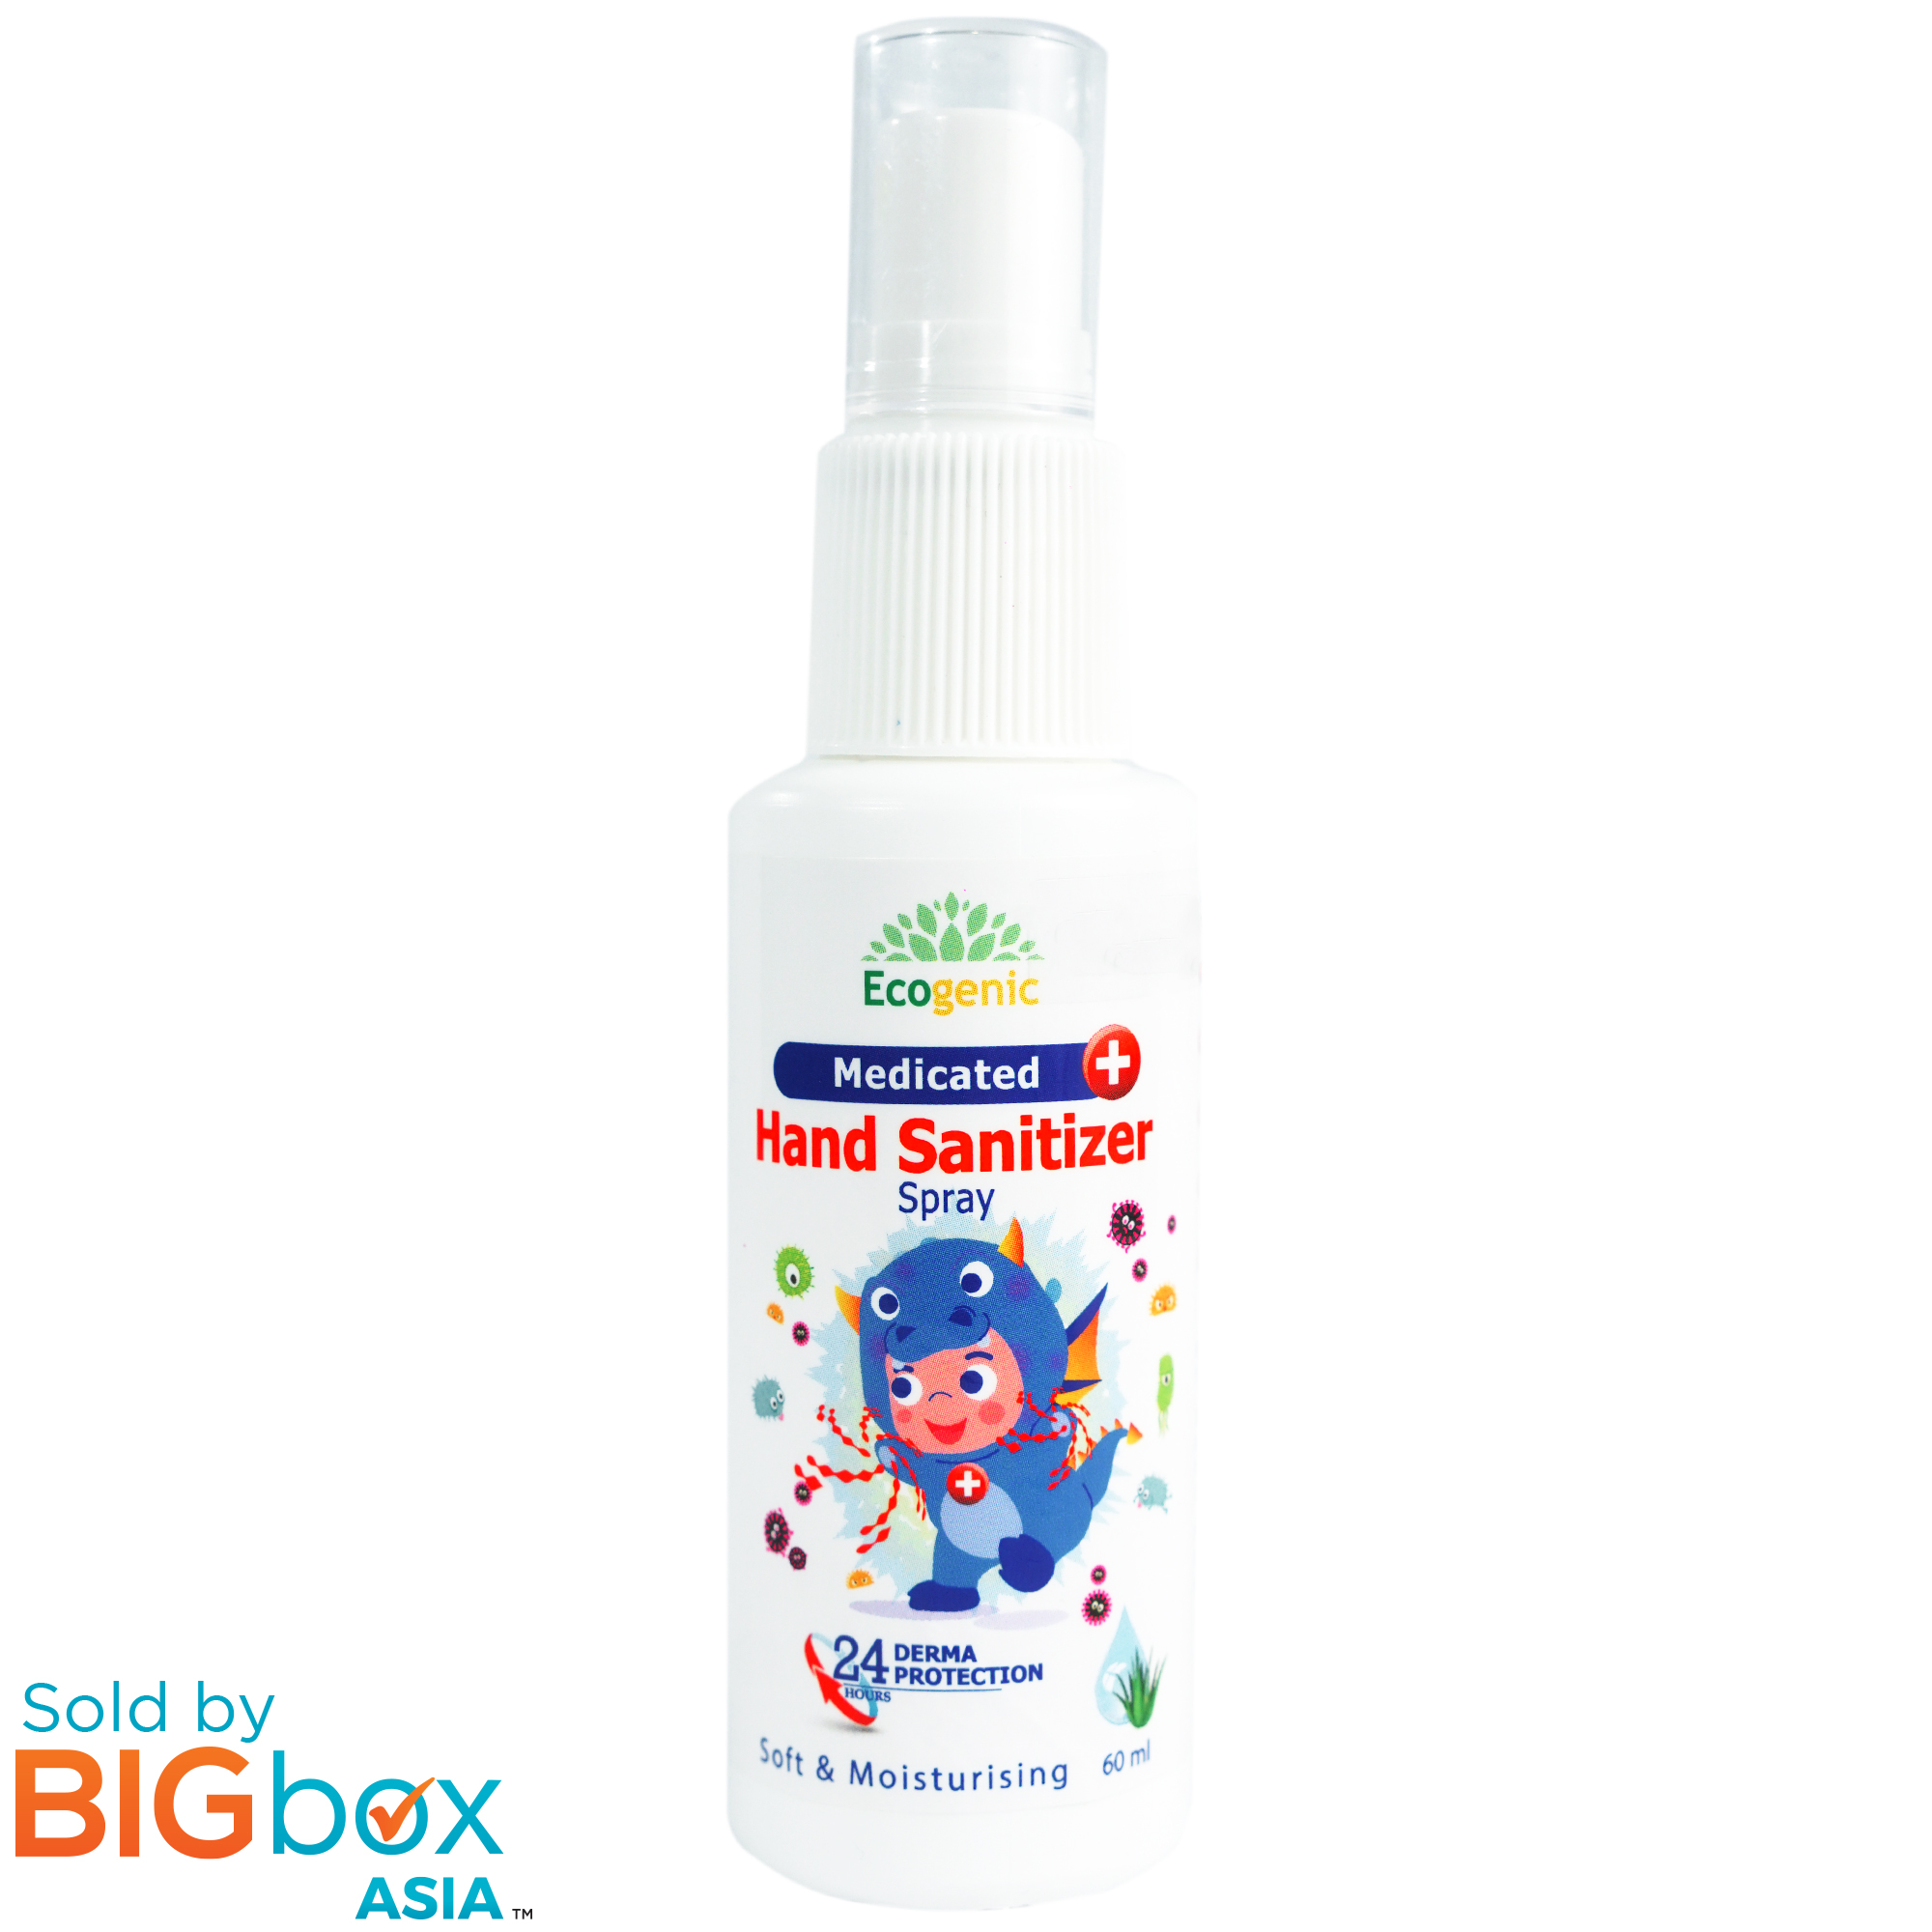 Ecogenic Medicated Hand Sanitizer Spray 60ml